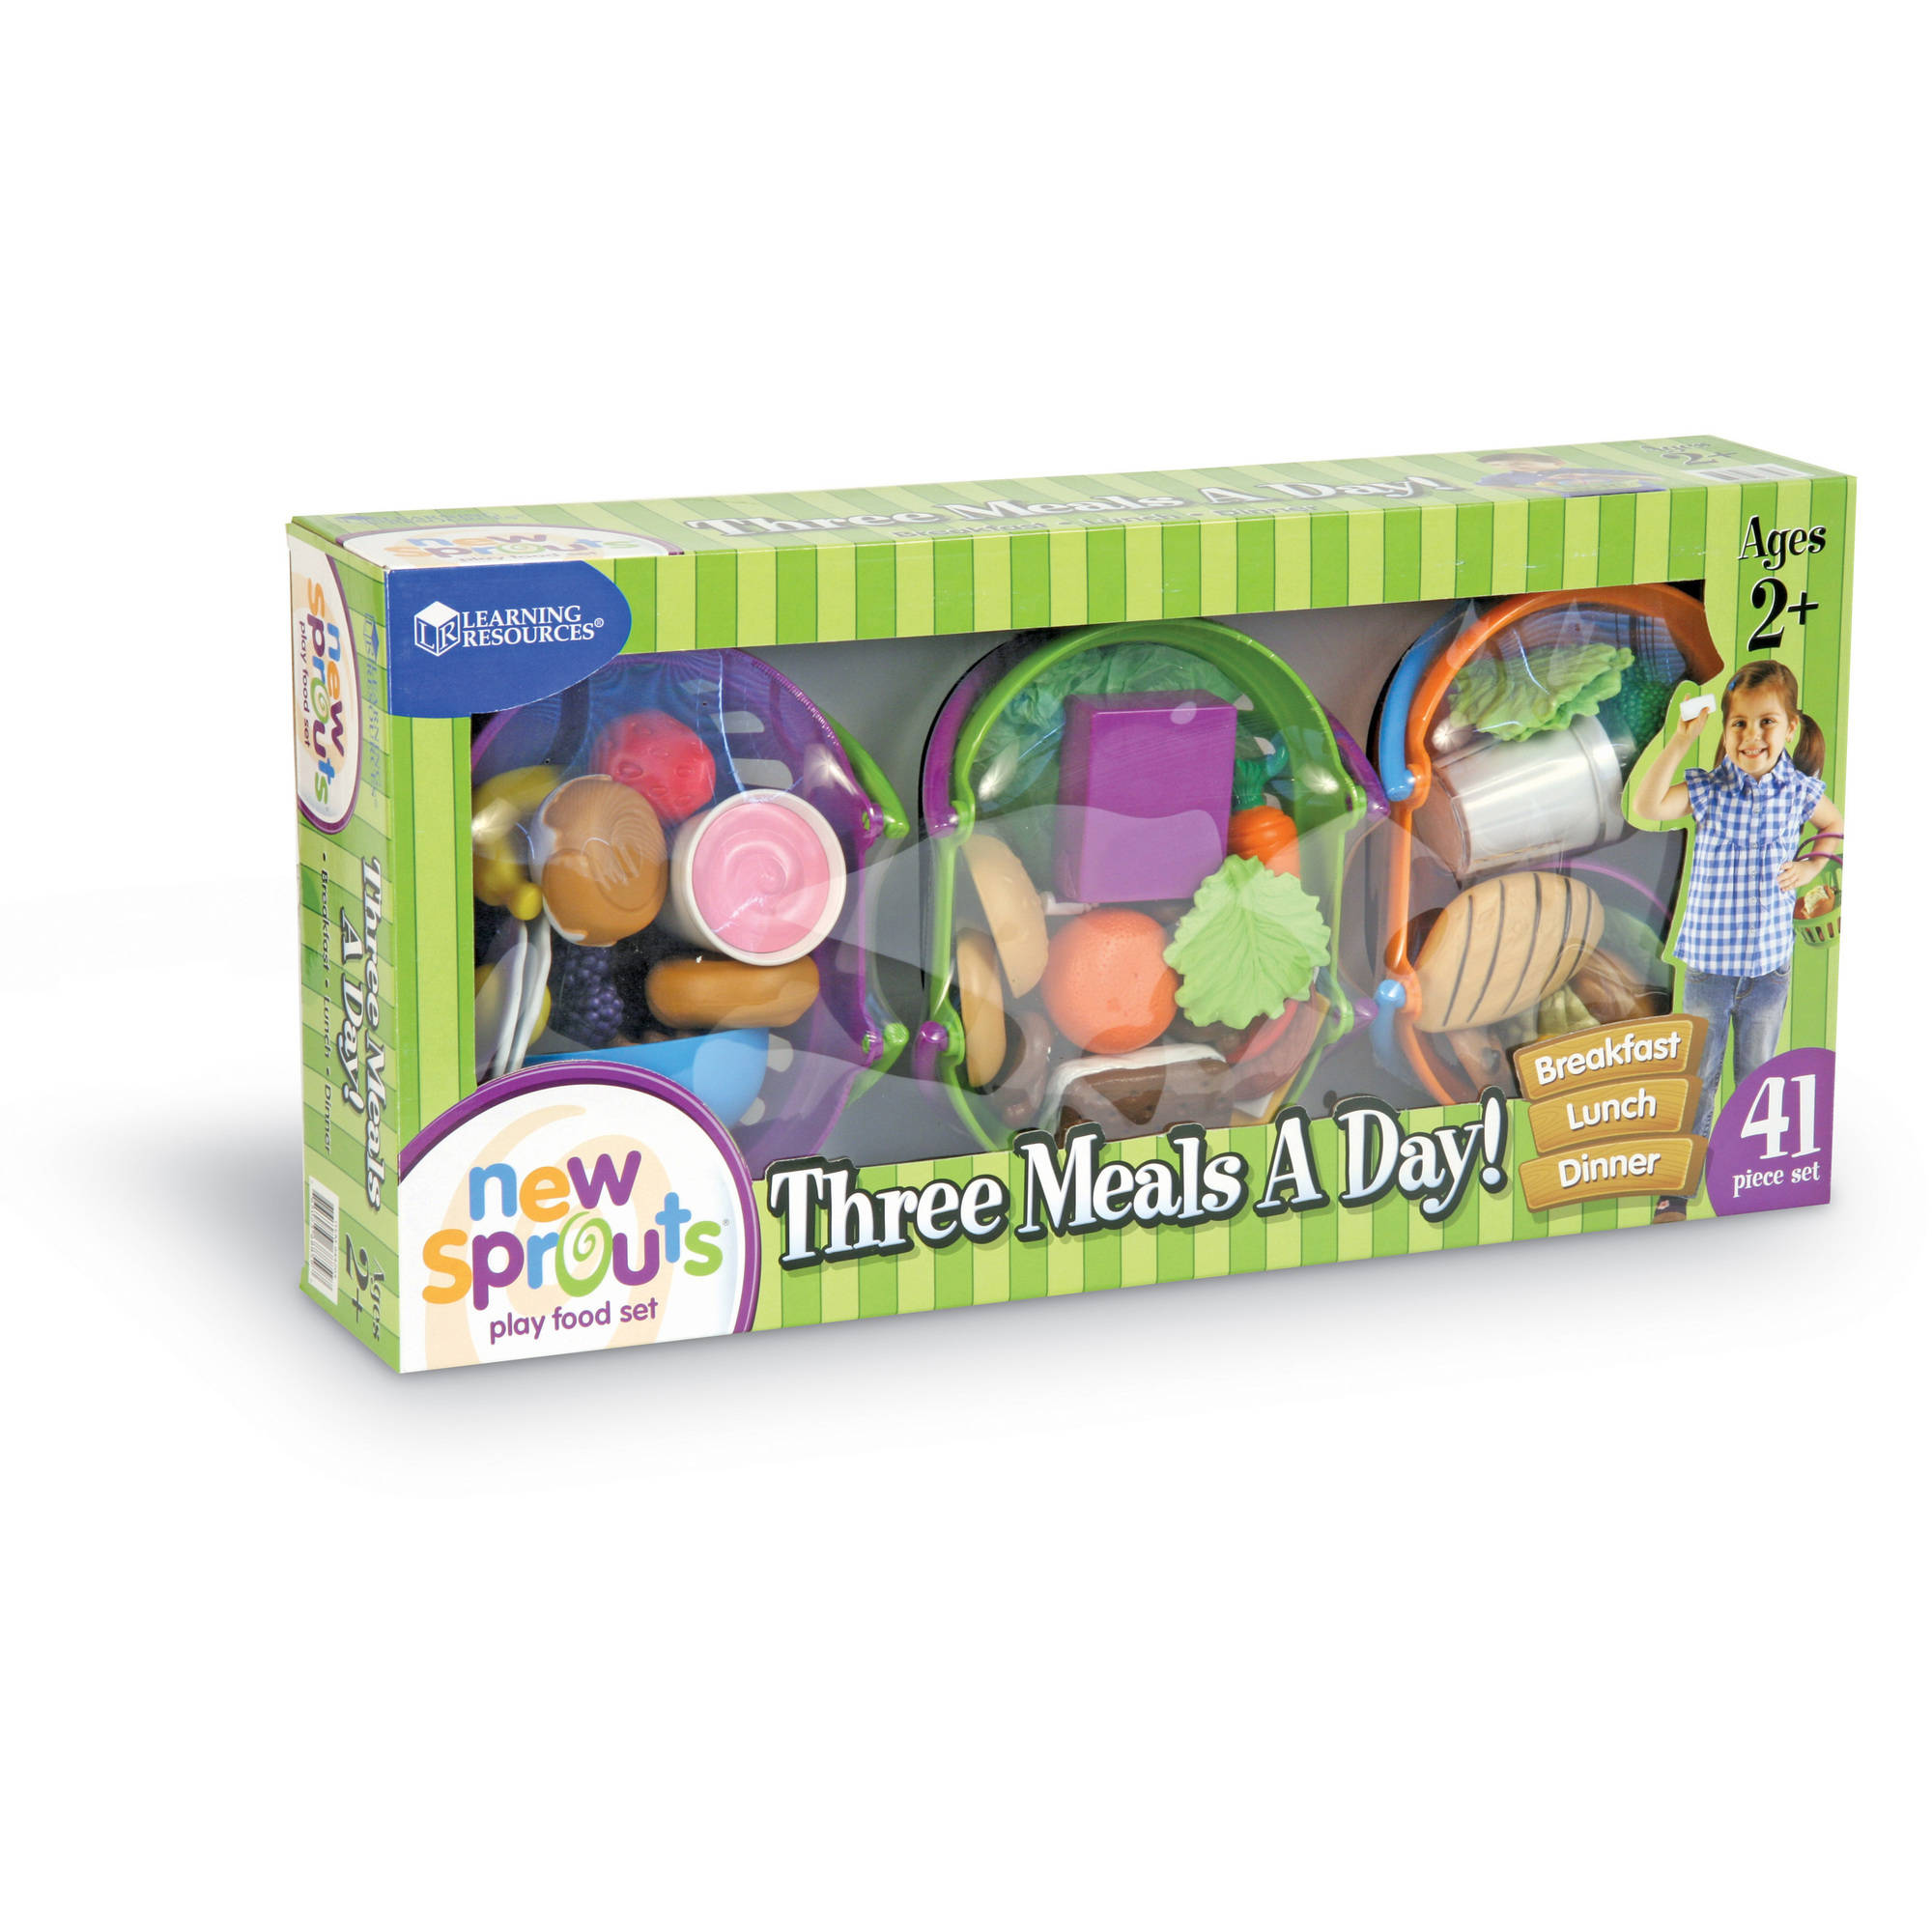 Learning Resources New Sprouts 3 Meals A Day Play Food Set